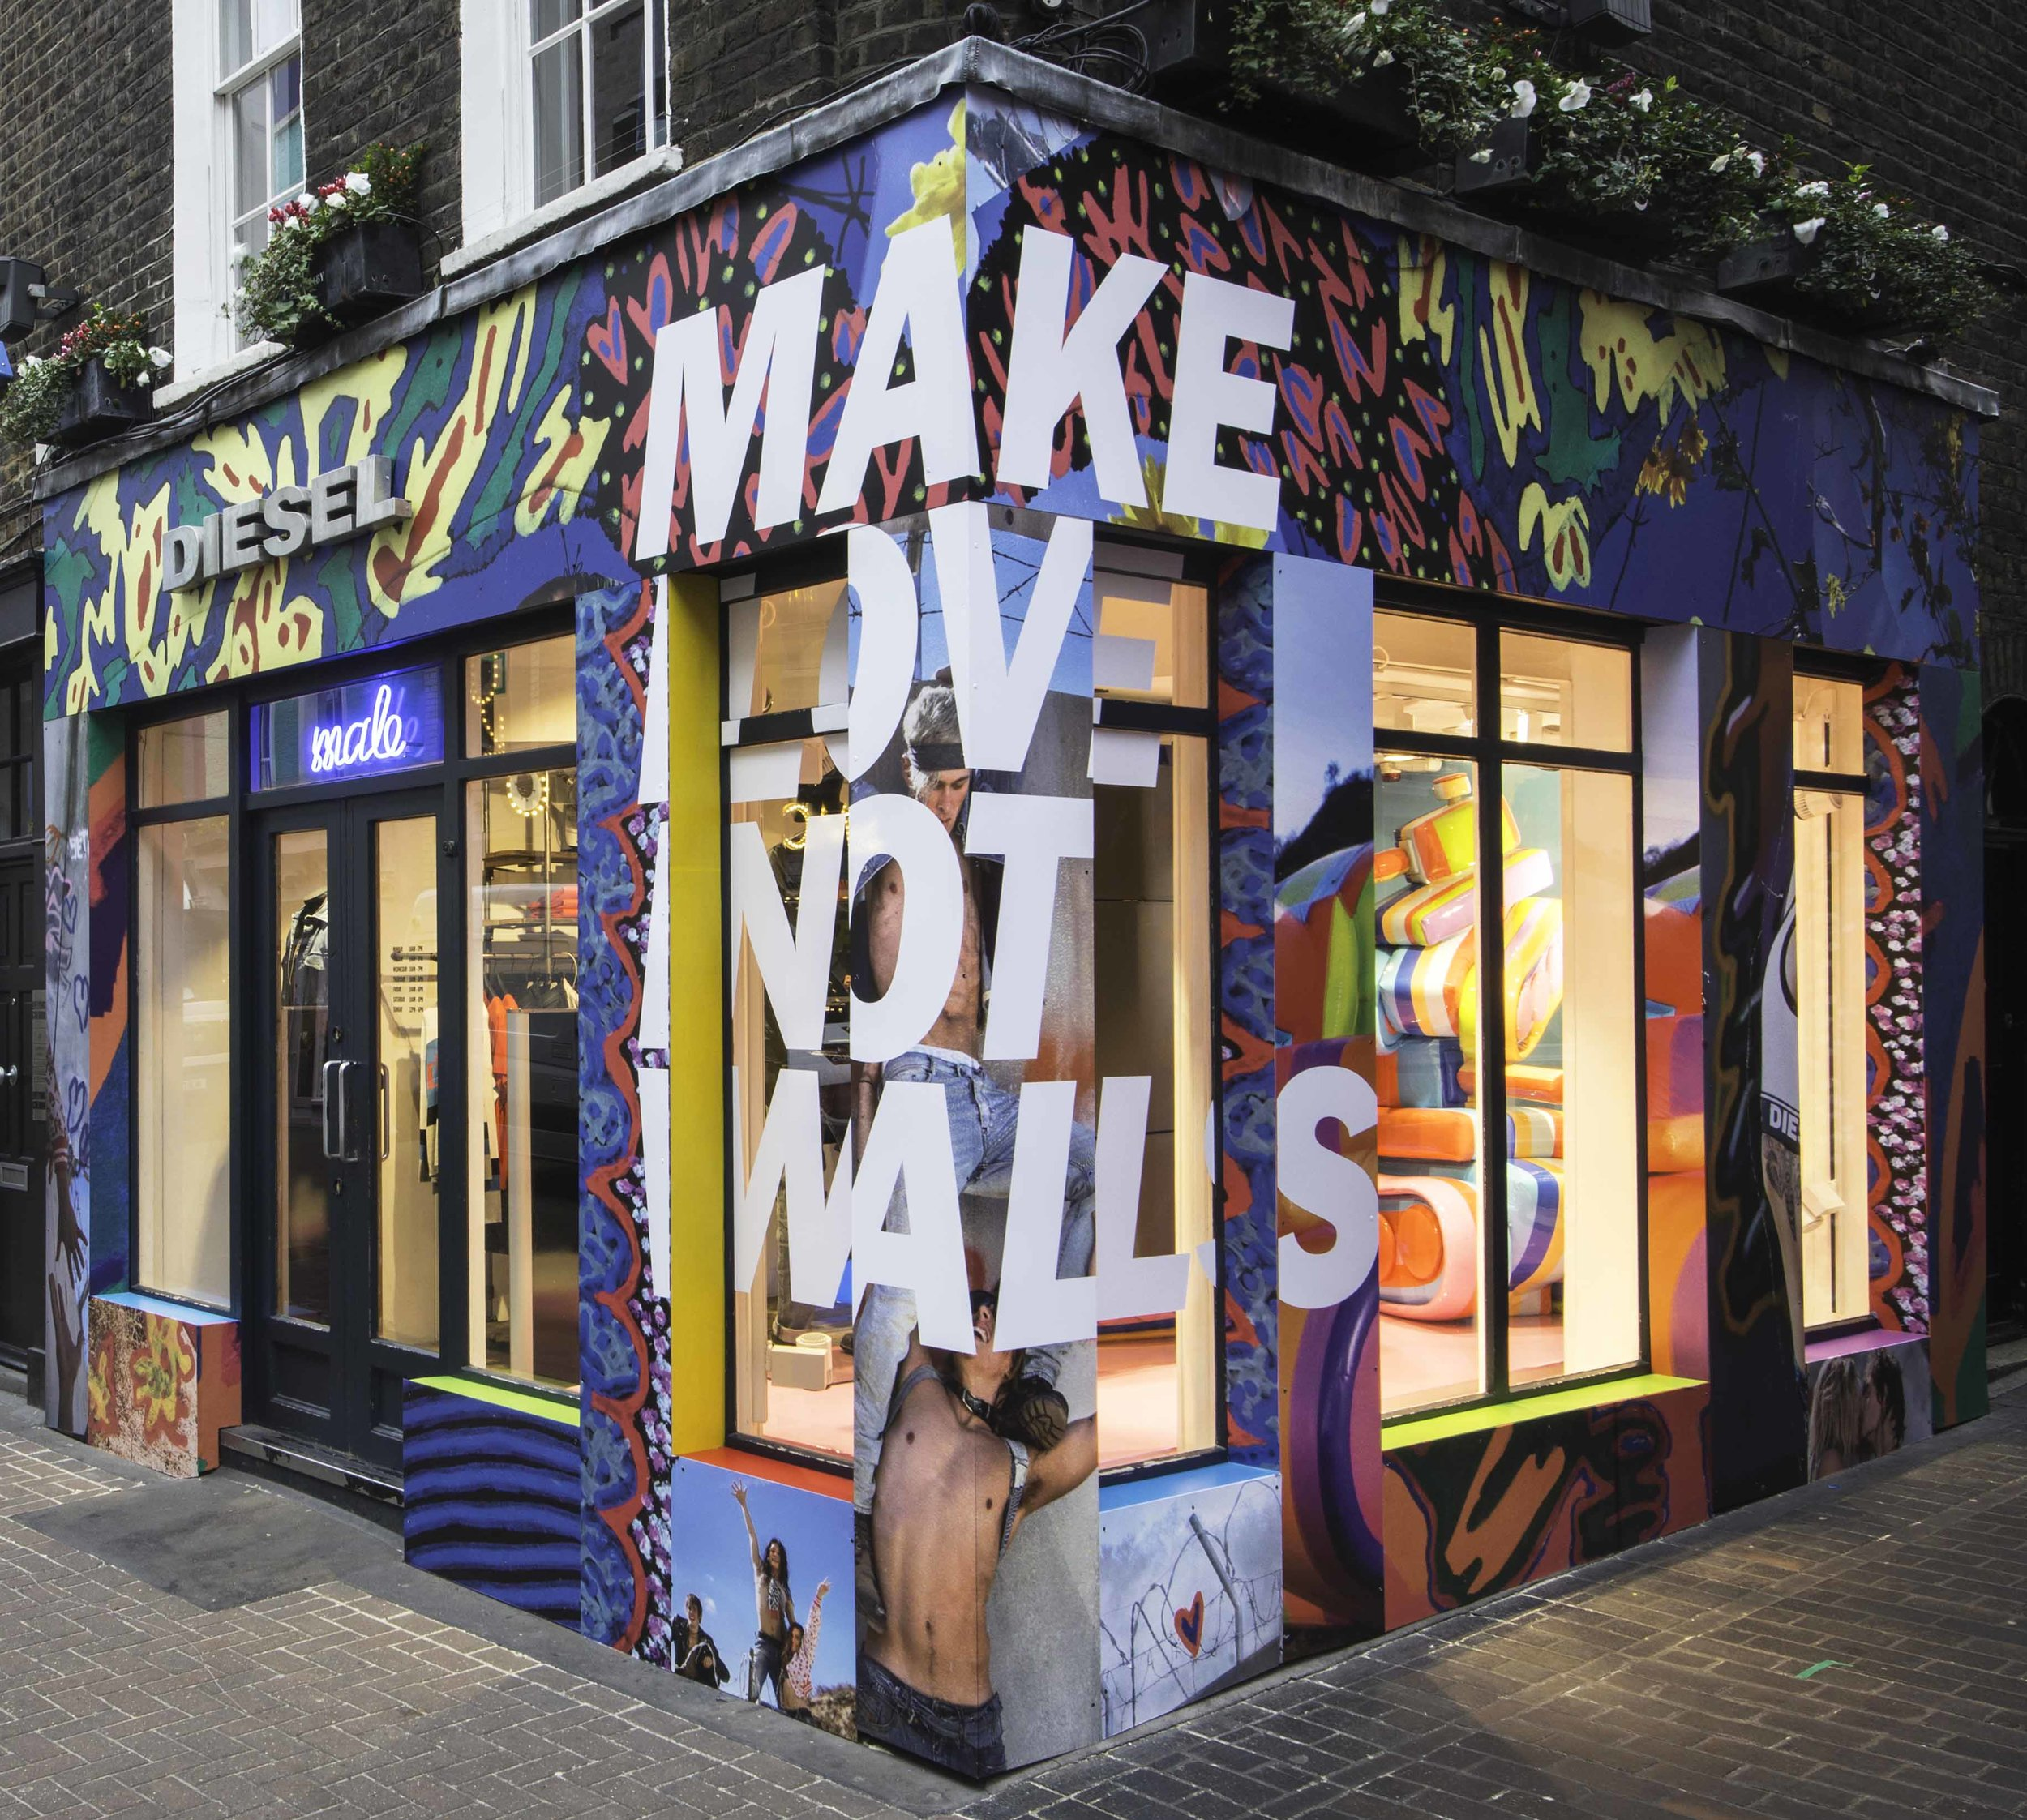 Diesel-Carnaby-Street-MAKE-LOVE-NOT-WALLS-Campaign-Male-Store-2017.jpg